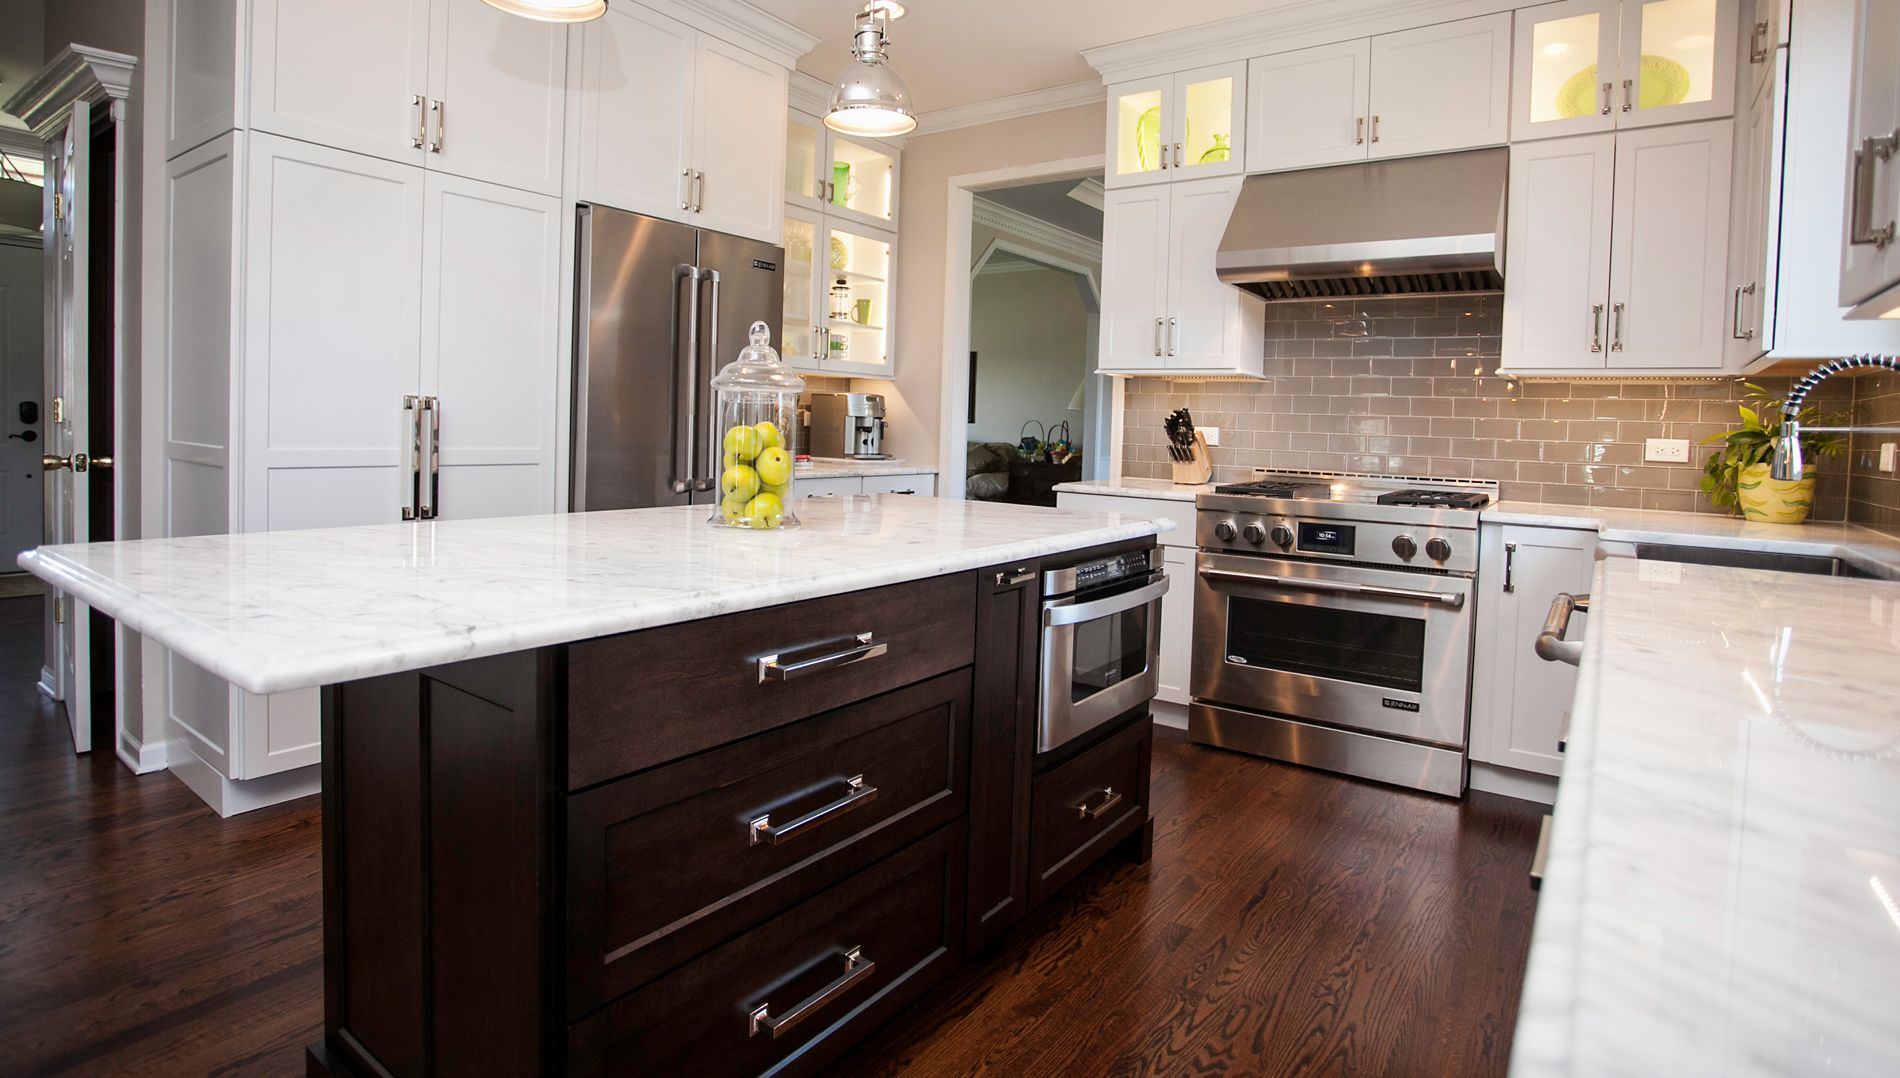 River Oak Cabinetry U0026 Design Offers Stylish Transitional Kitchen Designing  And Remodeling Services In Naperville, Aurora, And Wheaton, IL.